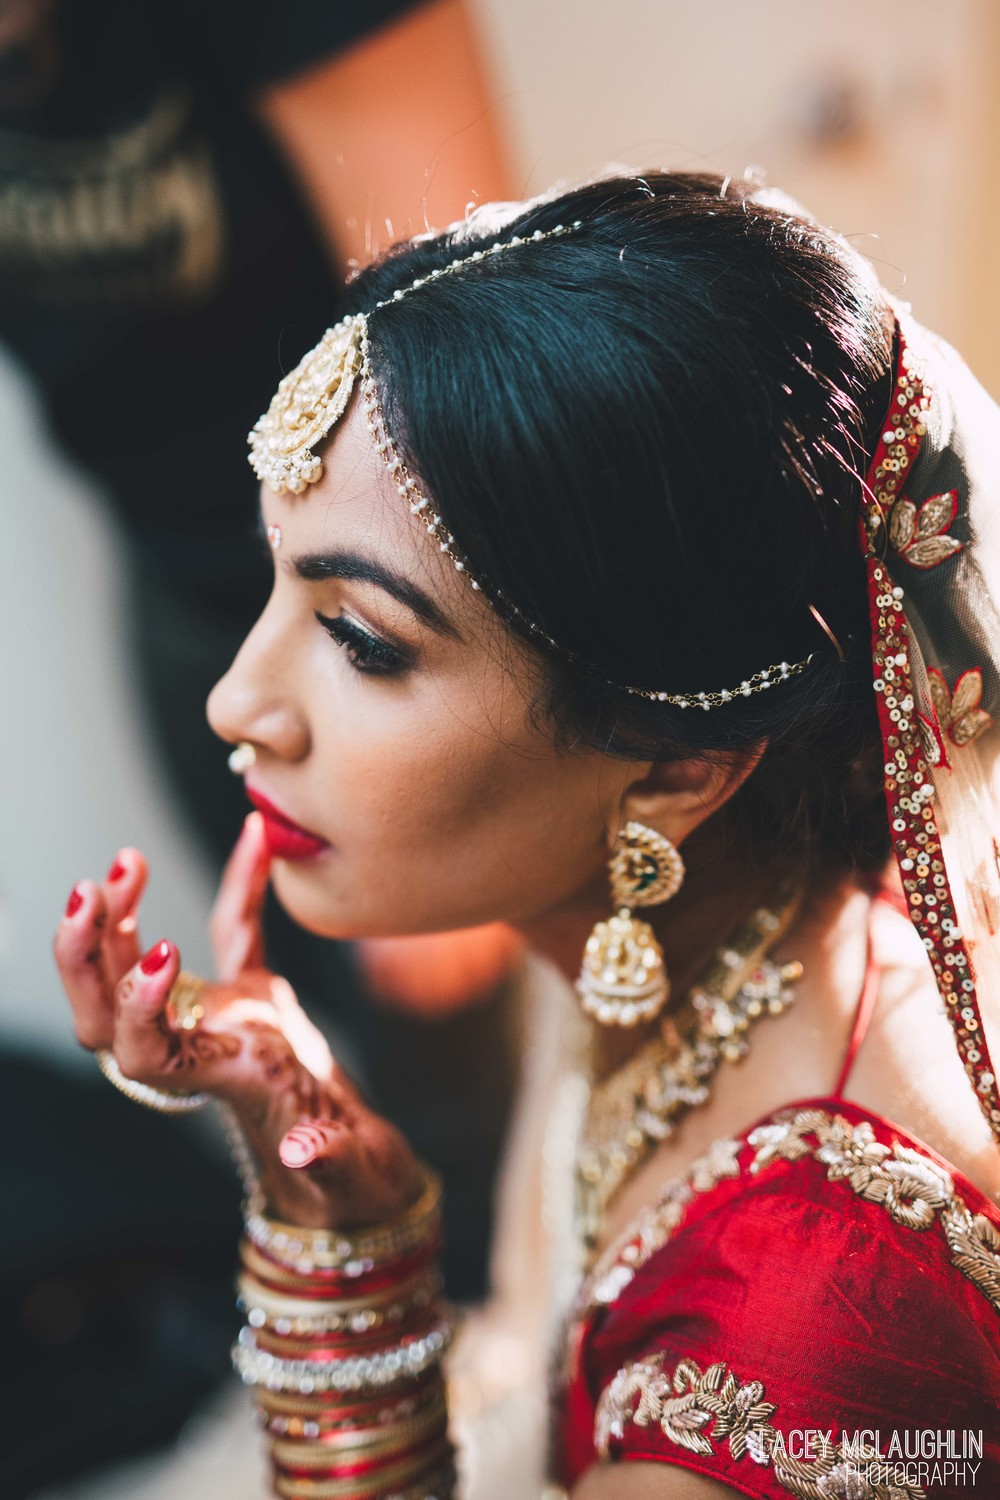 hindu single men in baton rouge Singles near me do you ask yourself the following questions where are all the best places to meet single men in my area where are the best places to meet single women are there any singles bars near me it's hard to find a new, local place to meet someone.